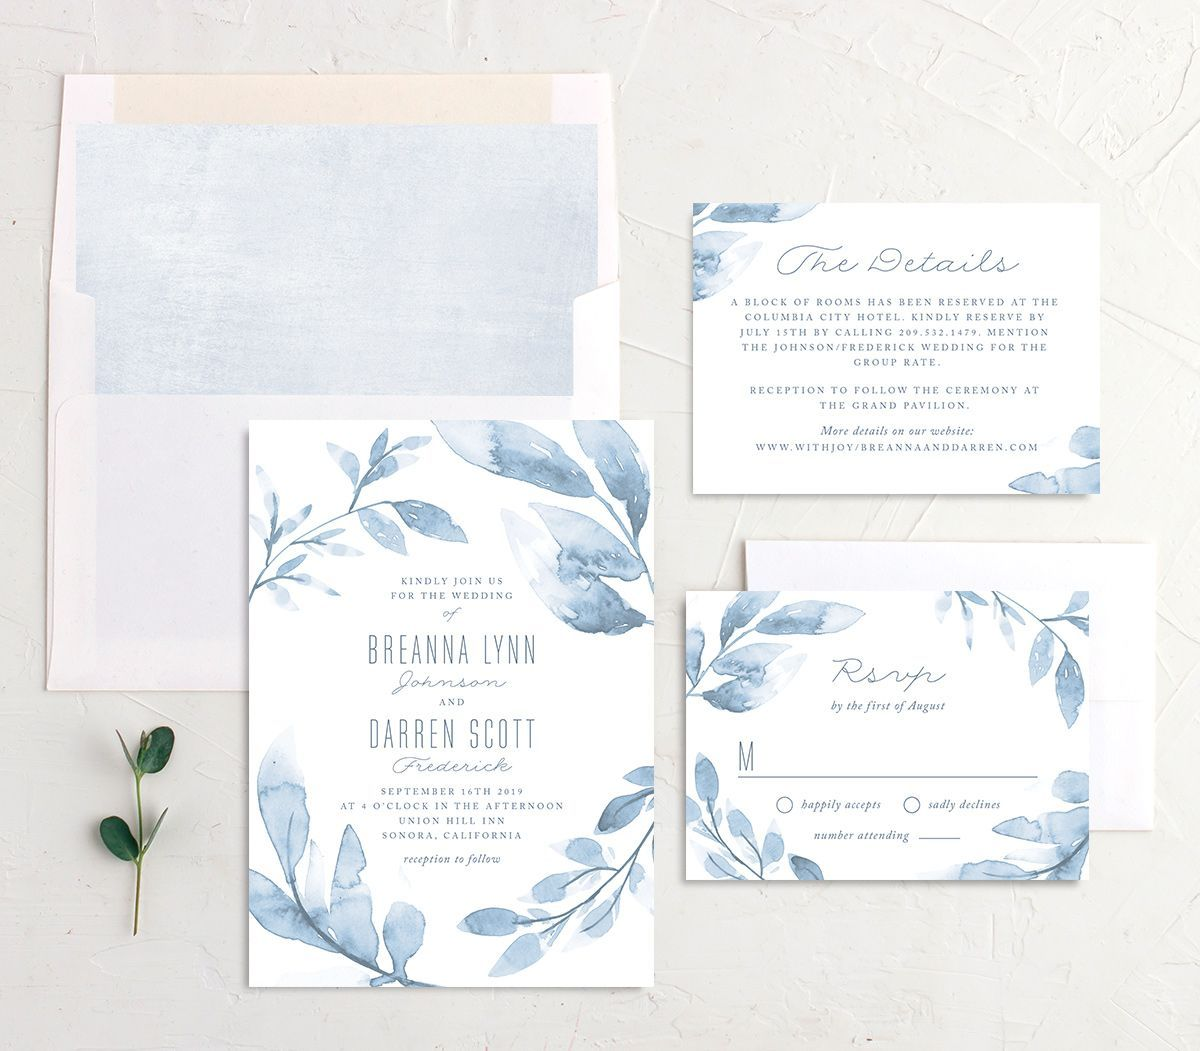 Painted Leaves Wedding Invitations The Knot In 2020 Wedding Invitations Wedding Invitations Leaves Wedding Leaves